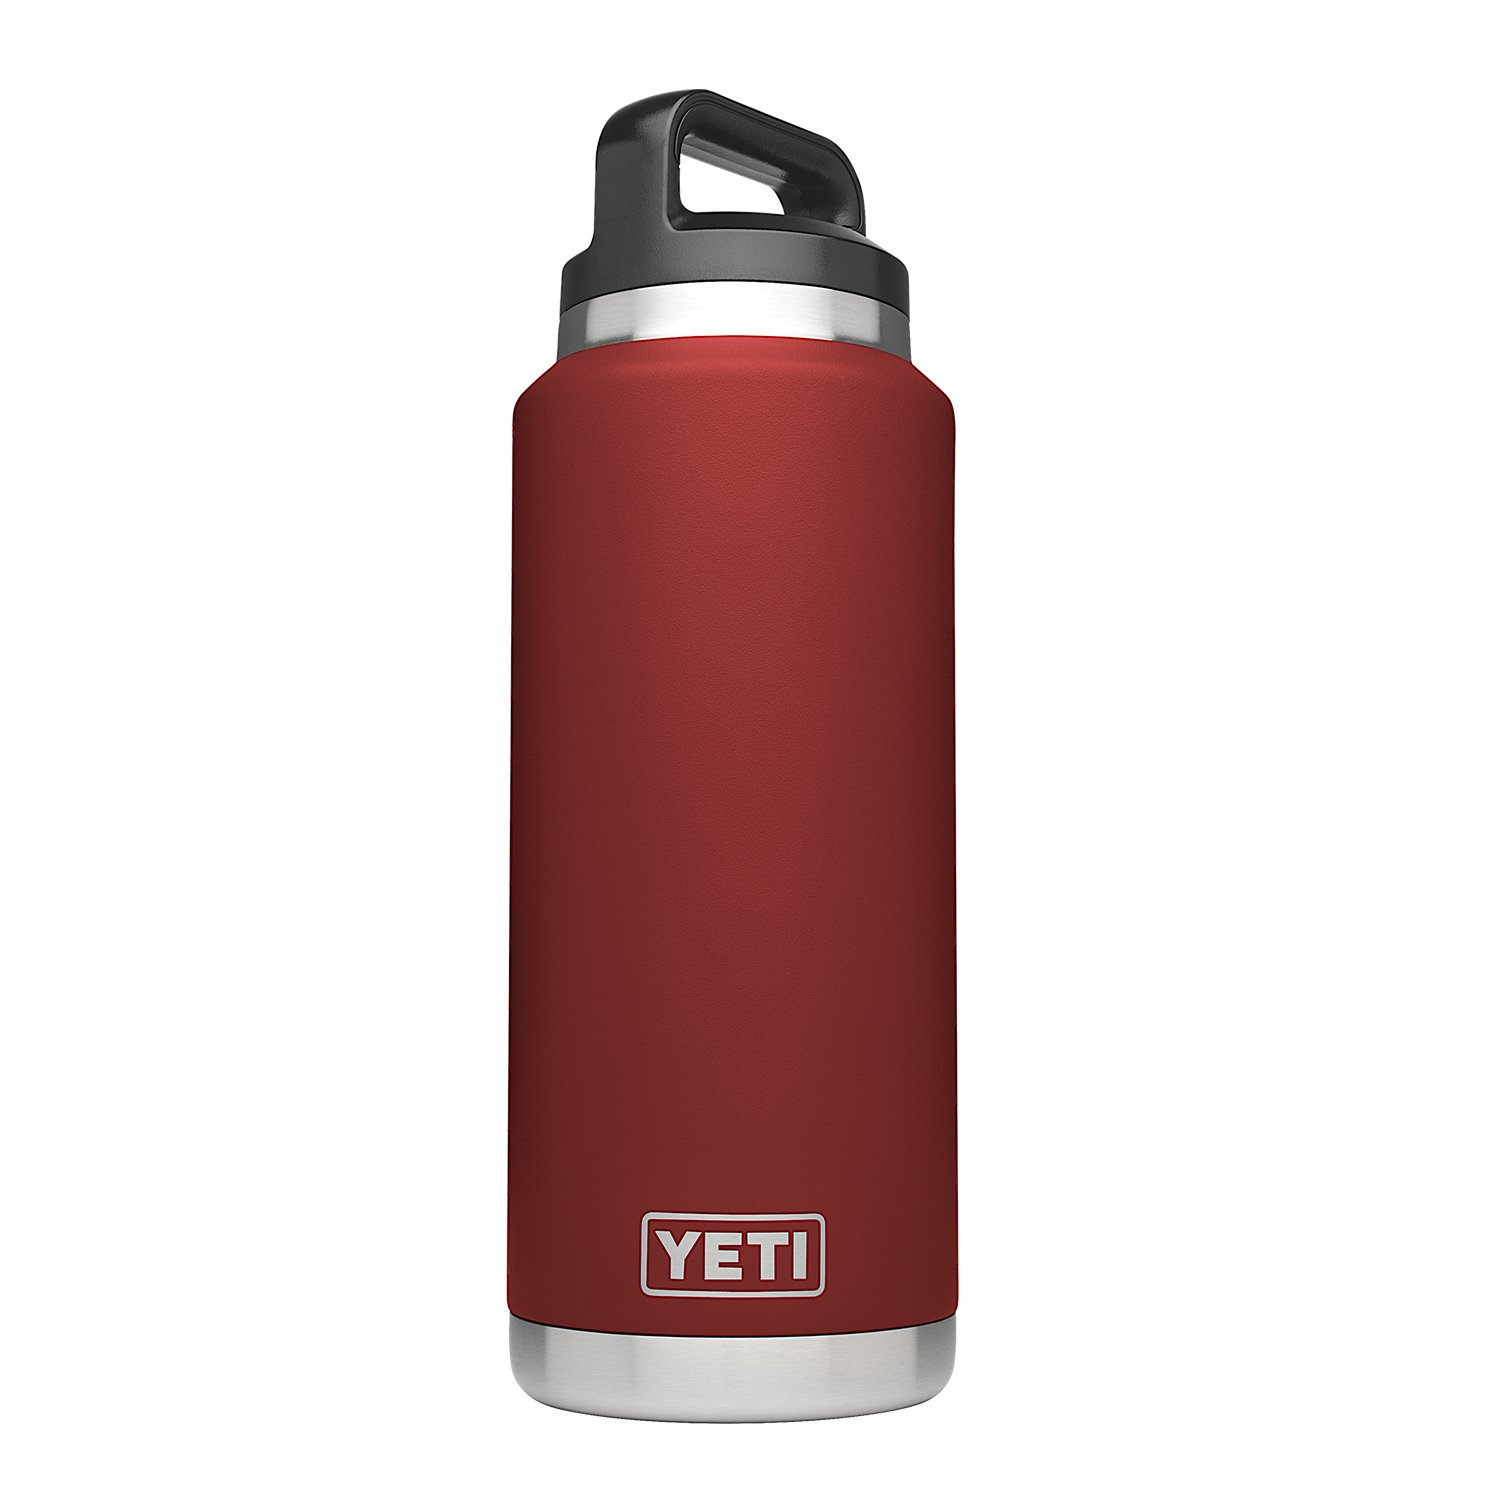 YETI Rambler 36oz Vacuum Insulated Stainless Steel Bottle with Cap (Stainless Steel) (Brick Red) by YETI